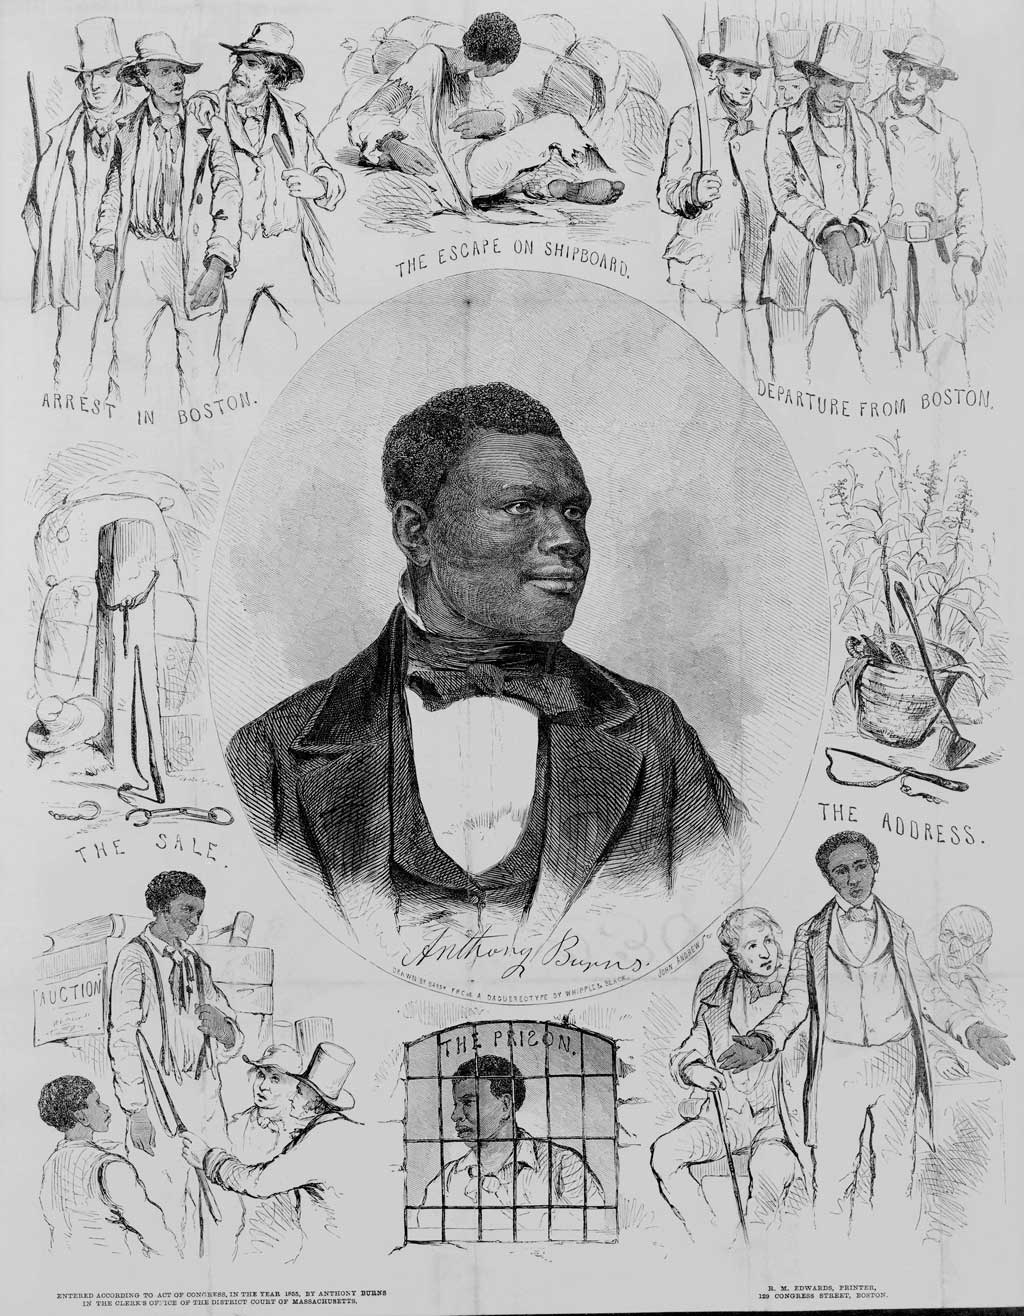 Portrait of Anthony Burns surrounded by scenes from his life. These include (clockwise from lower left): the sale of the youthful Burns at auction, a whipping post with bales of cotton, his arrest in Boston on May 24, 1854, his escape from Richmond on shipboard, his departure from Boston escorted by federal marshals and troops, Burns's 'address' (to the court?), and finally Burns in prison.